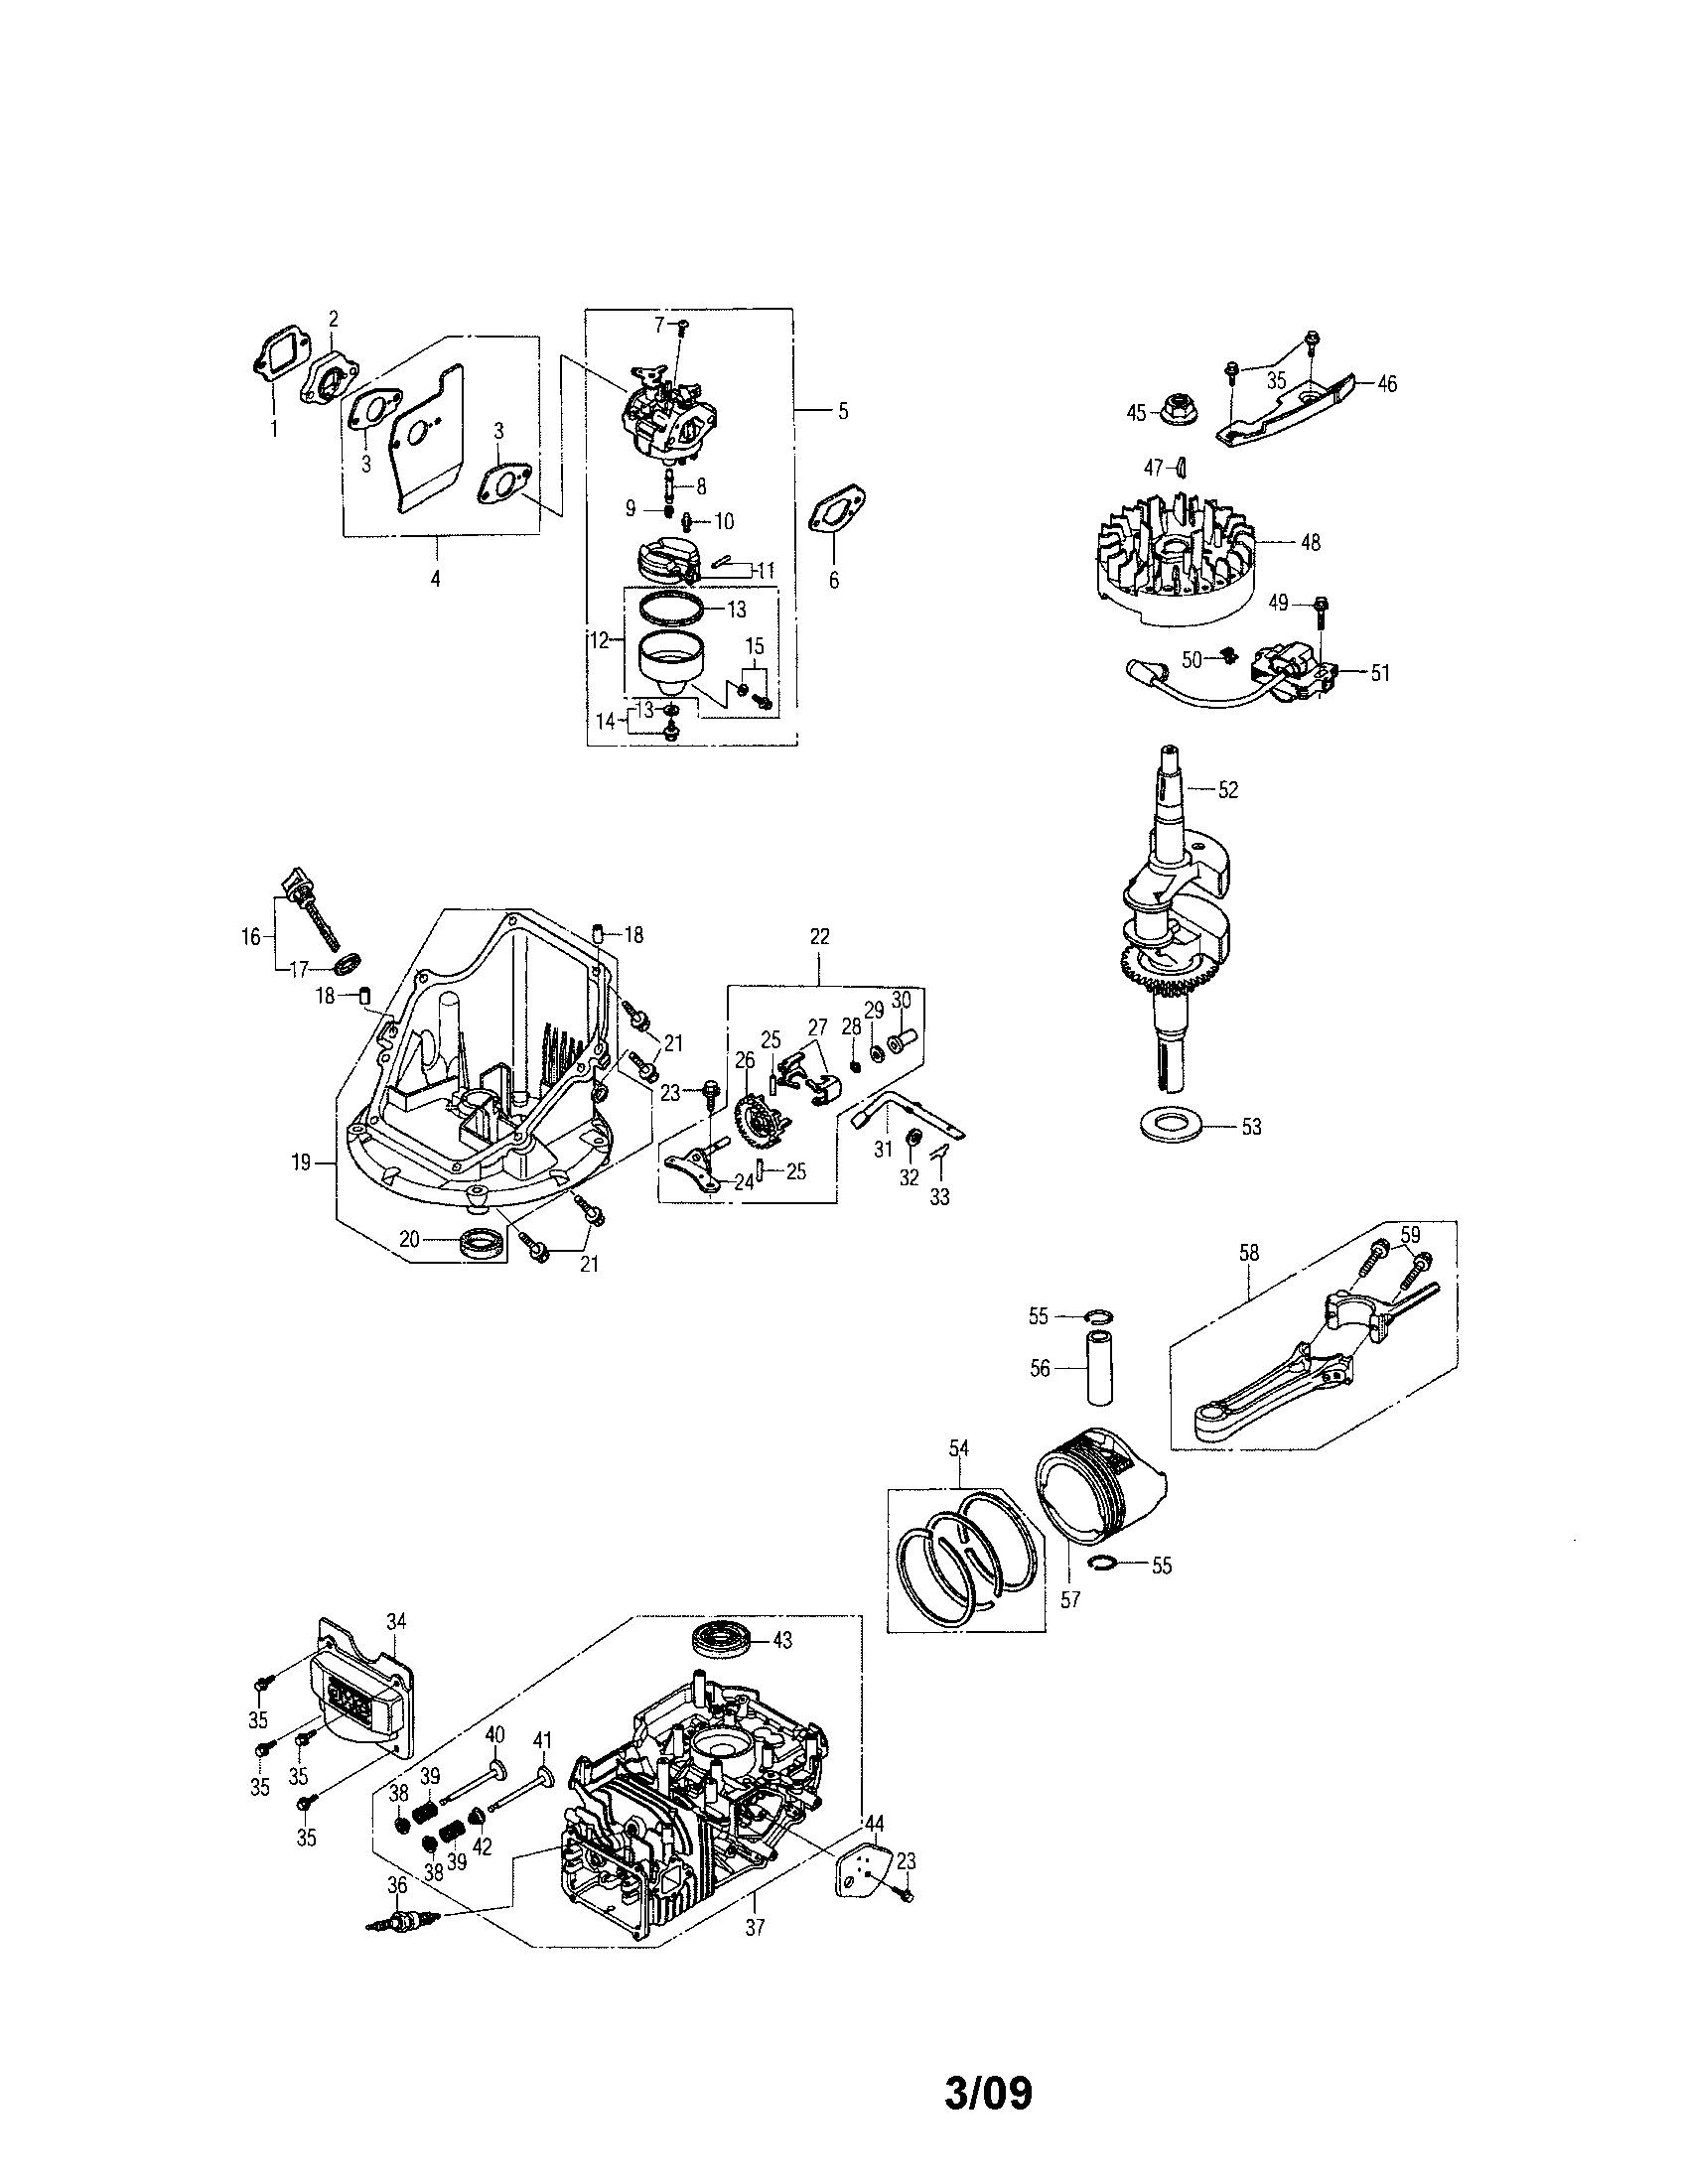 Honda model gcv160 lan5r engine genuine parts 97 honda accord engine diagram honda engine schematics